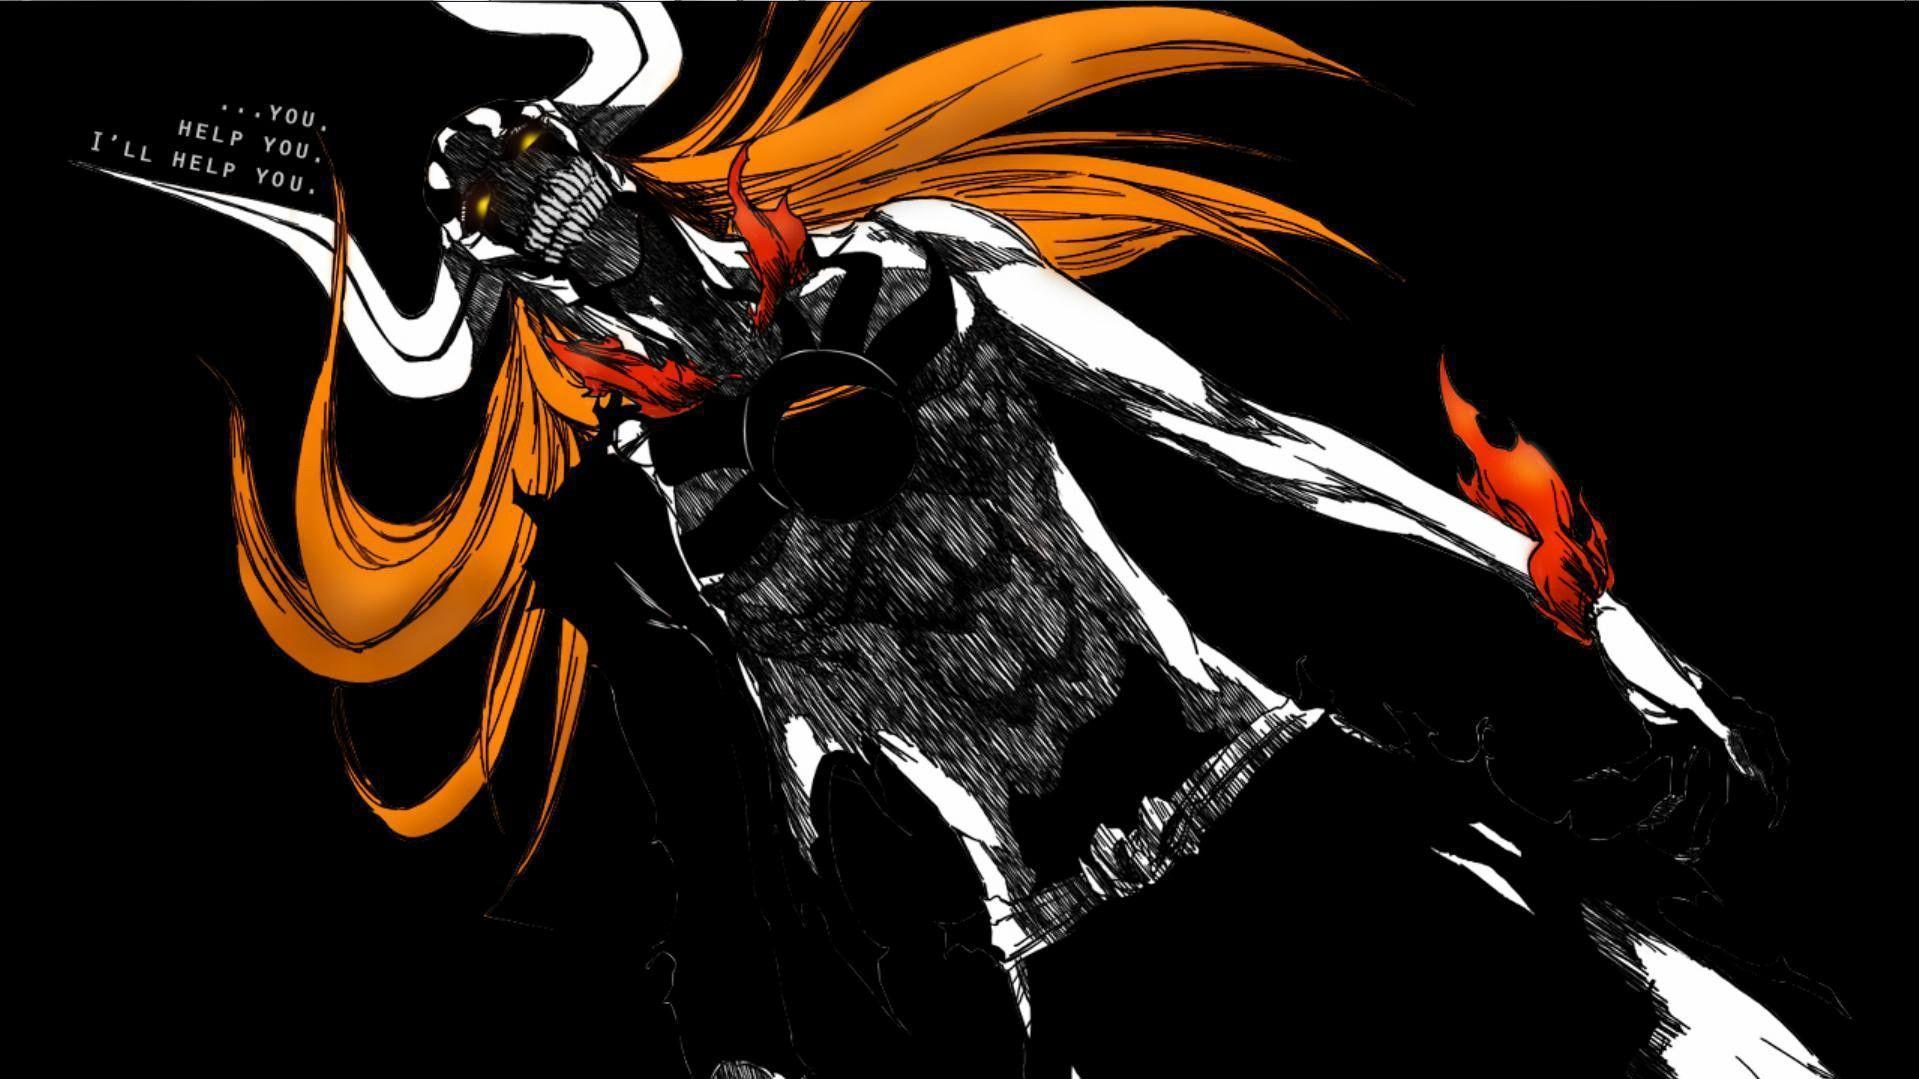 http://wallpapercave.com/wp/BbTwZKp.jpg Ichigo Hollow Wallpaper